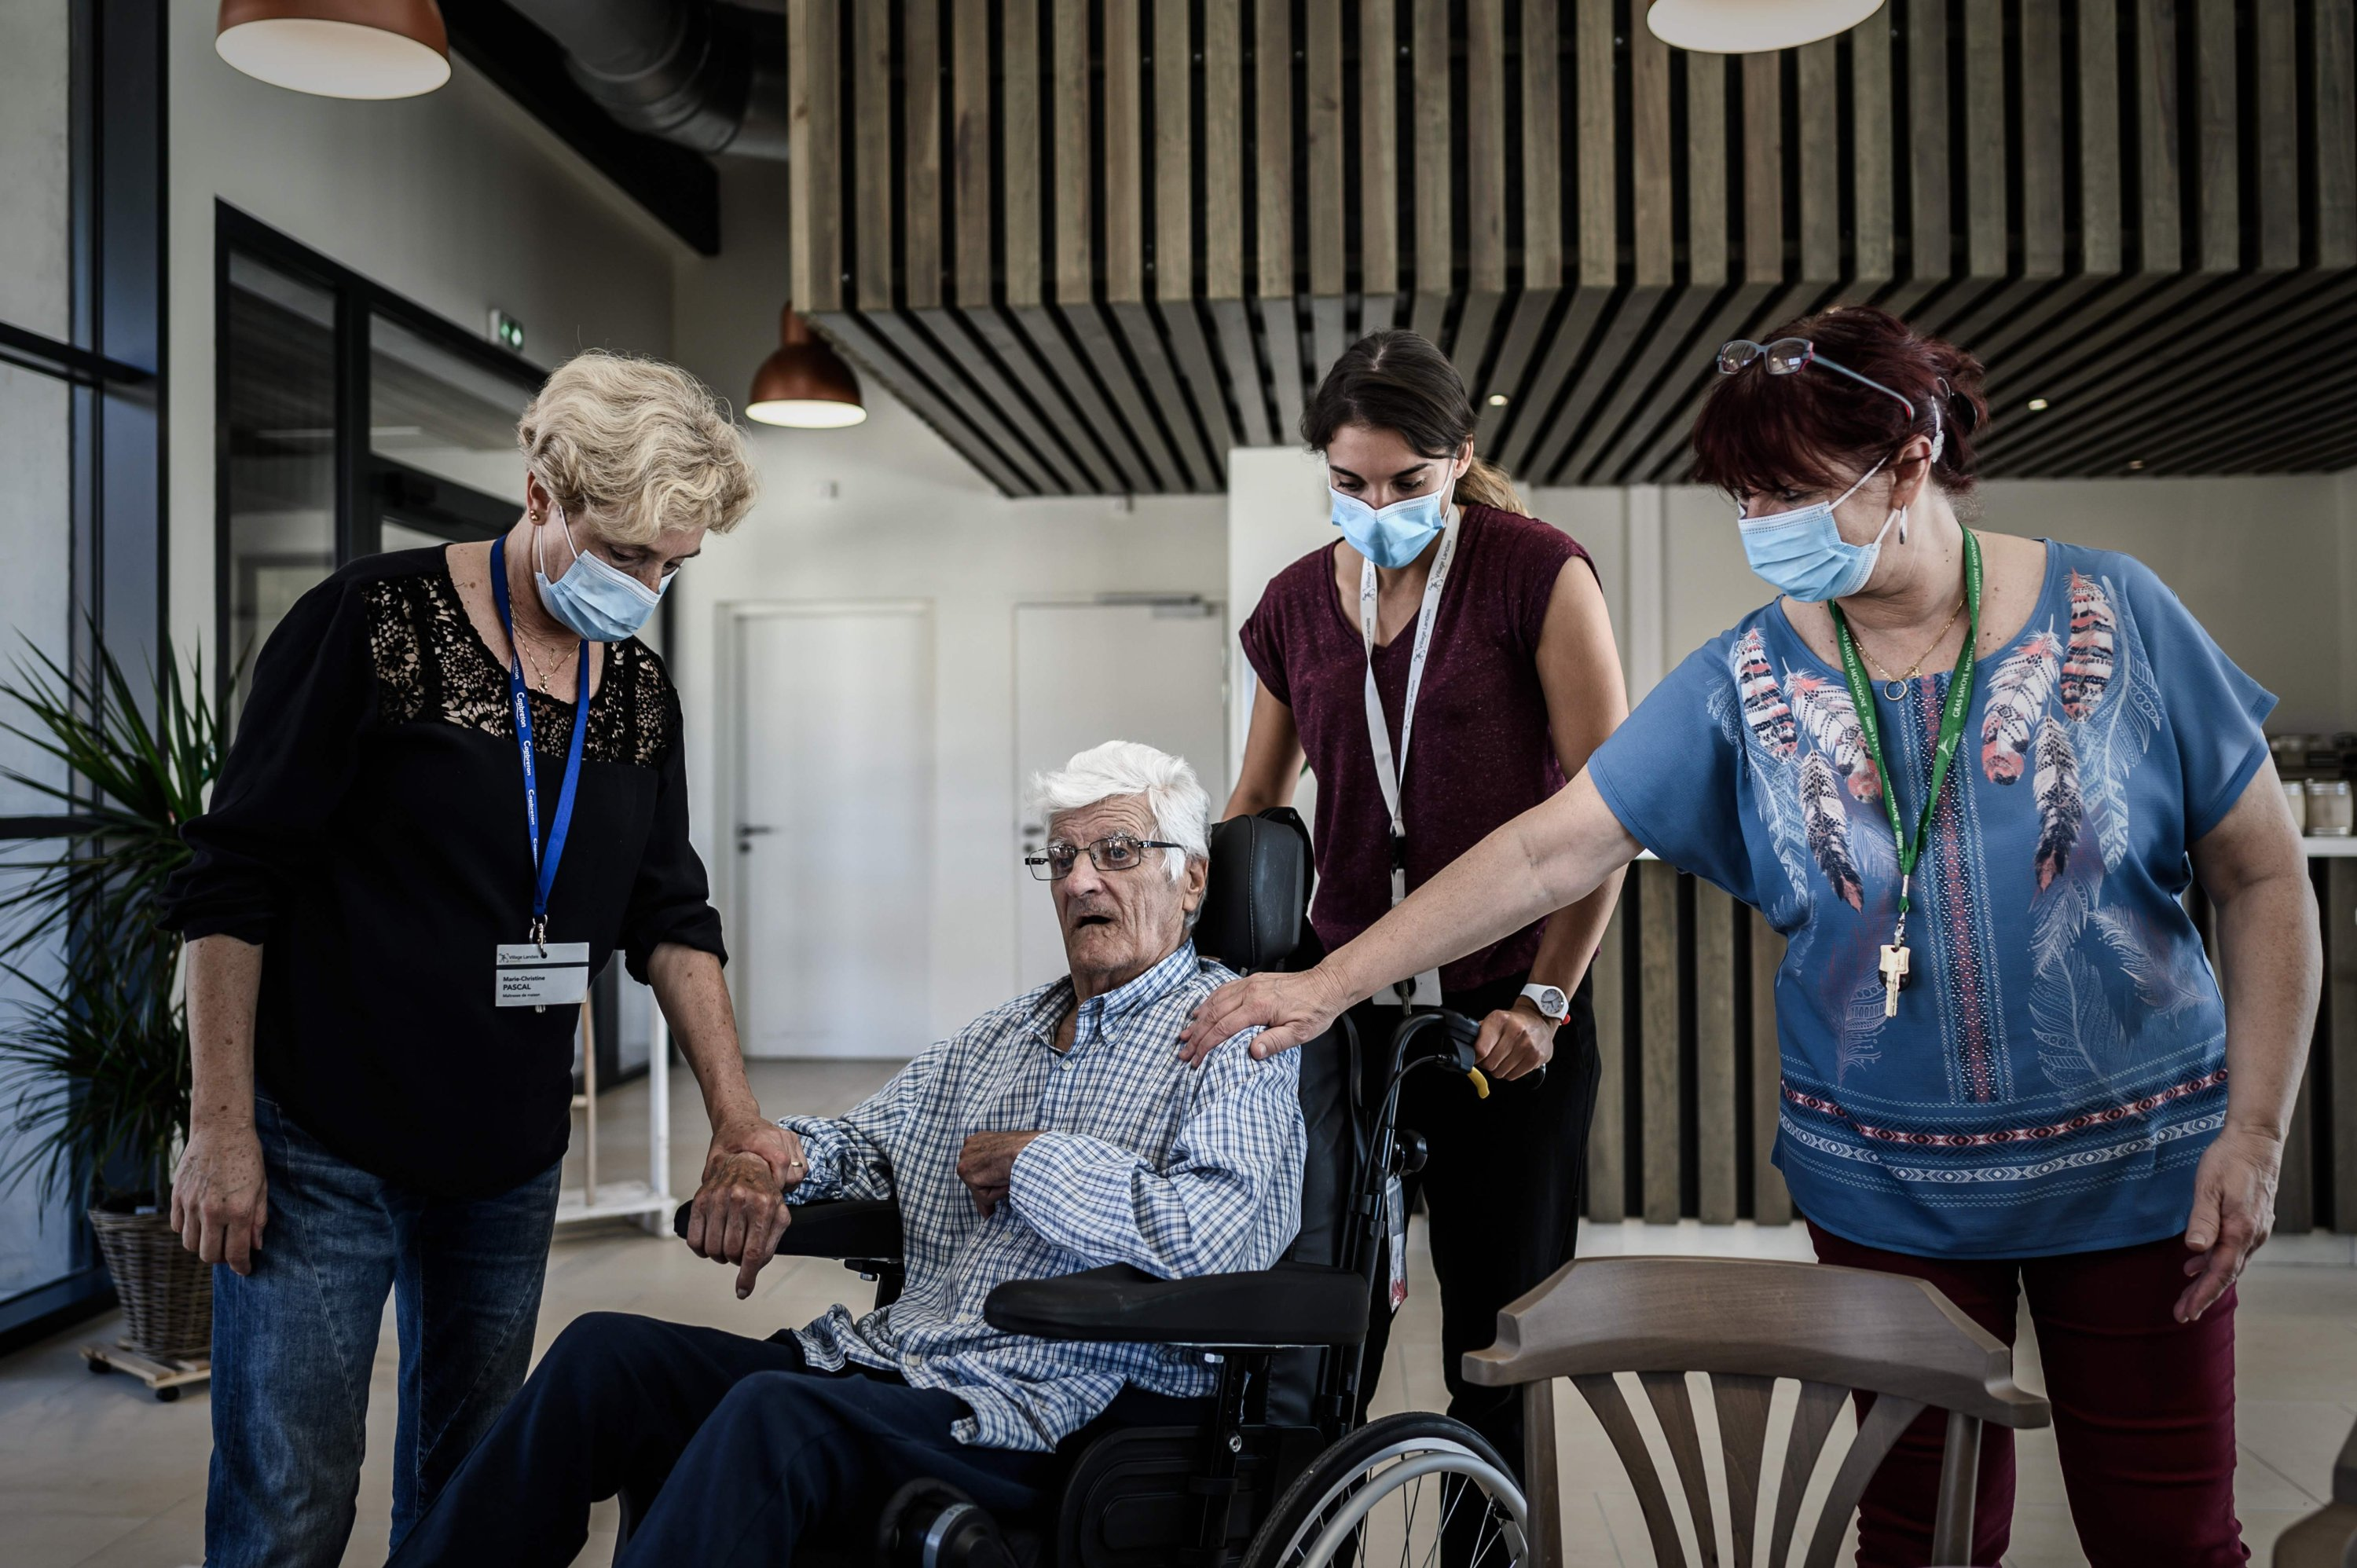 An Alzheimer's patient speaks with health care staff before lunch at the restaurant of the village Landais Alzheimer site for Alzheimer's patients in Dax, southwestern France, Sept. 9, 2020. (AFP Photo)